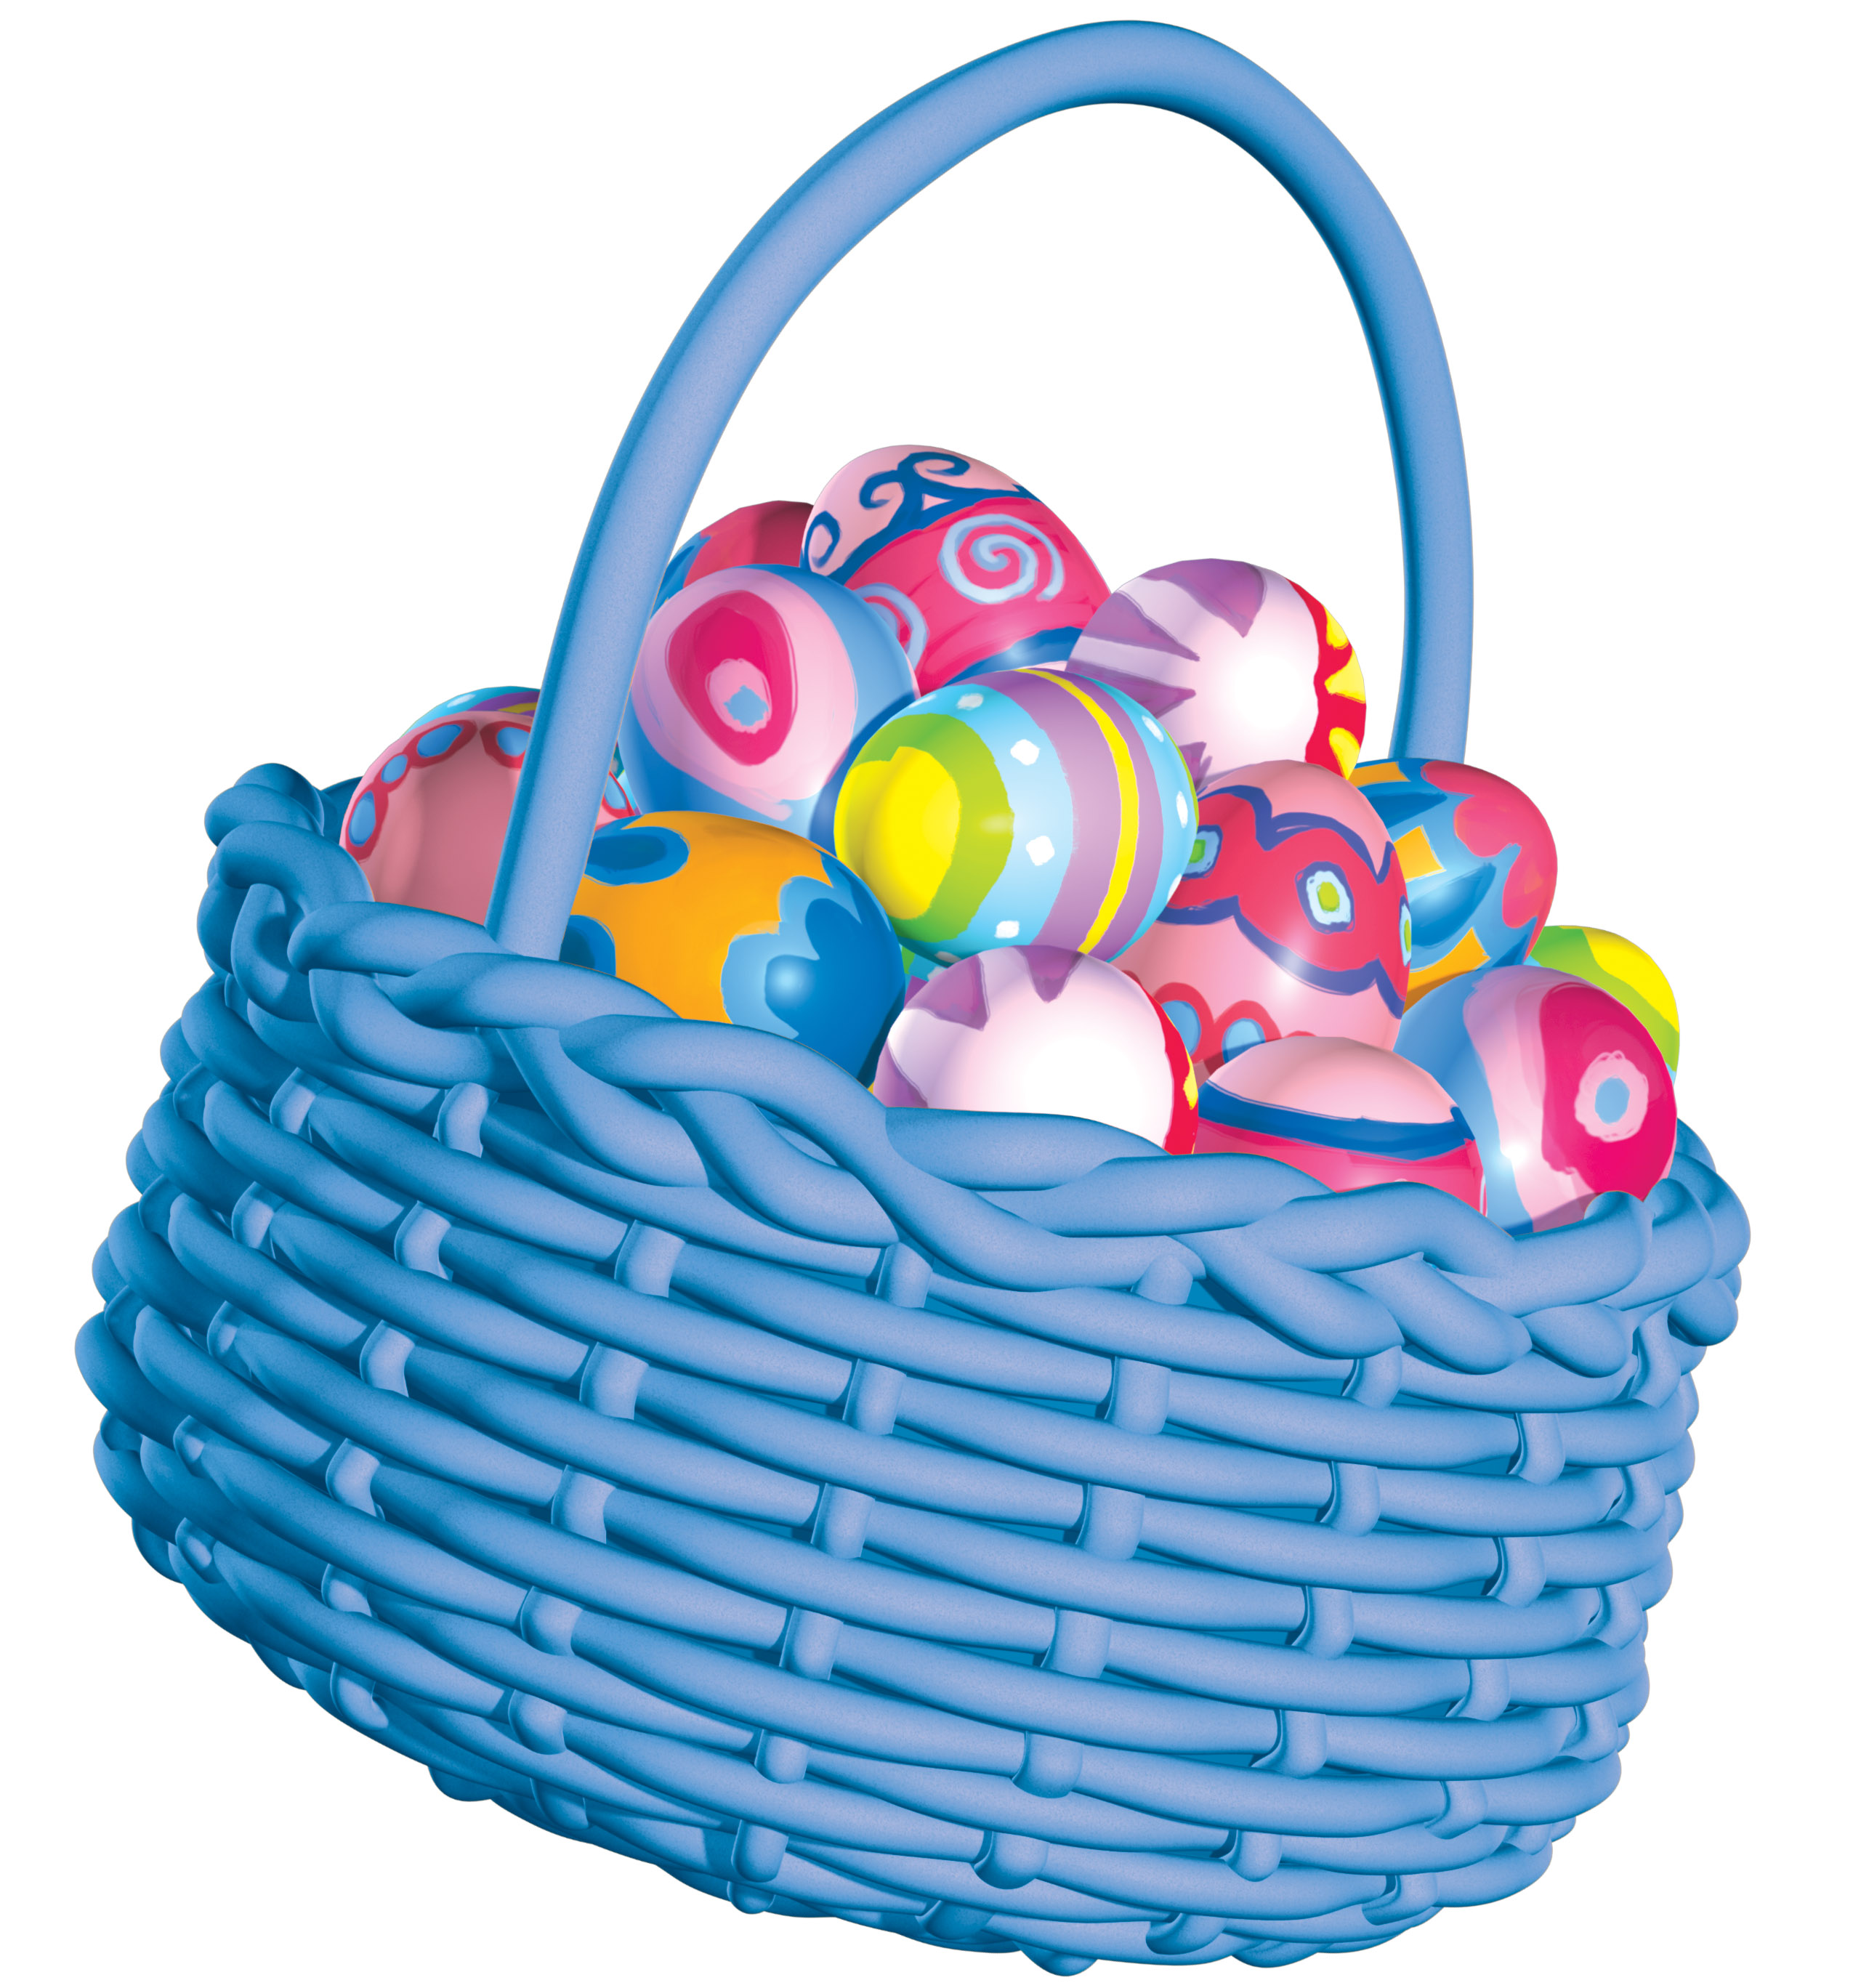 2550x2736 Easter Basket Easter Basket Clip Art Free Easter Holiday